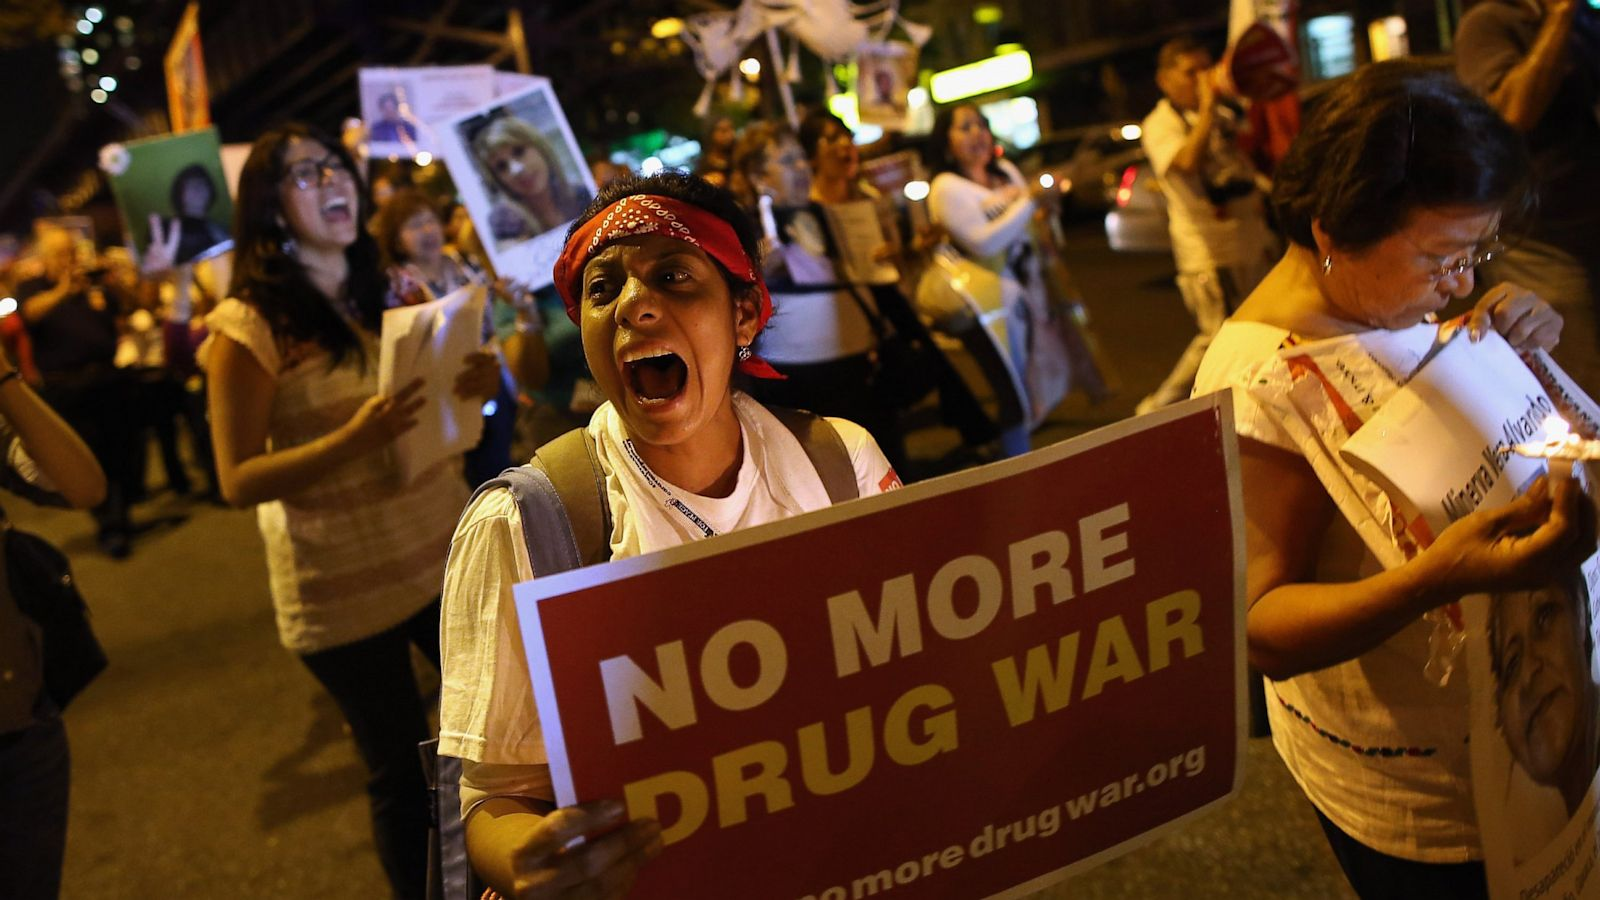 war with the drugs Drug arrests now account for a quarter of the people locked up in america, but drug use rates have remained steady over the last 40 years, we have spent trillions of dollars on the failed and ineffective war on drugs.